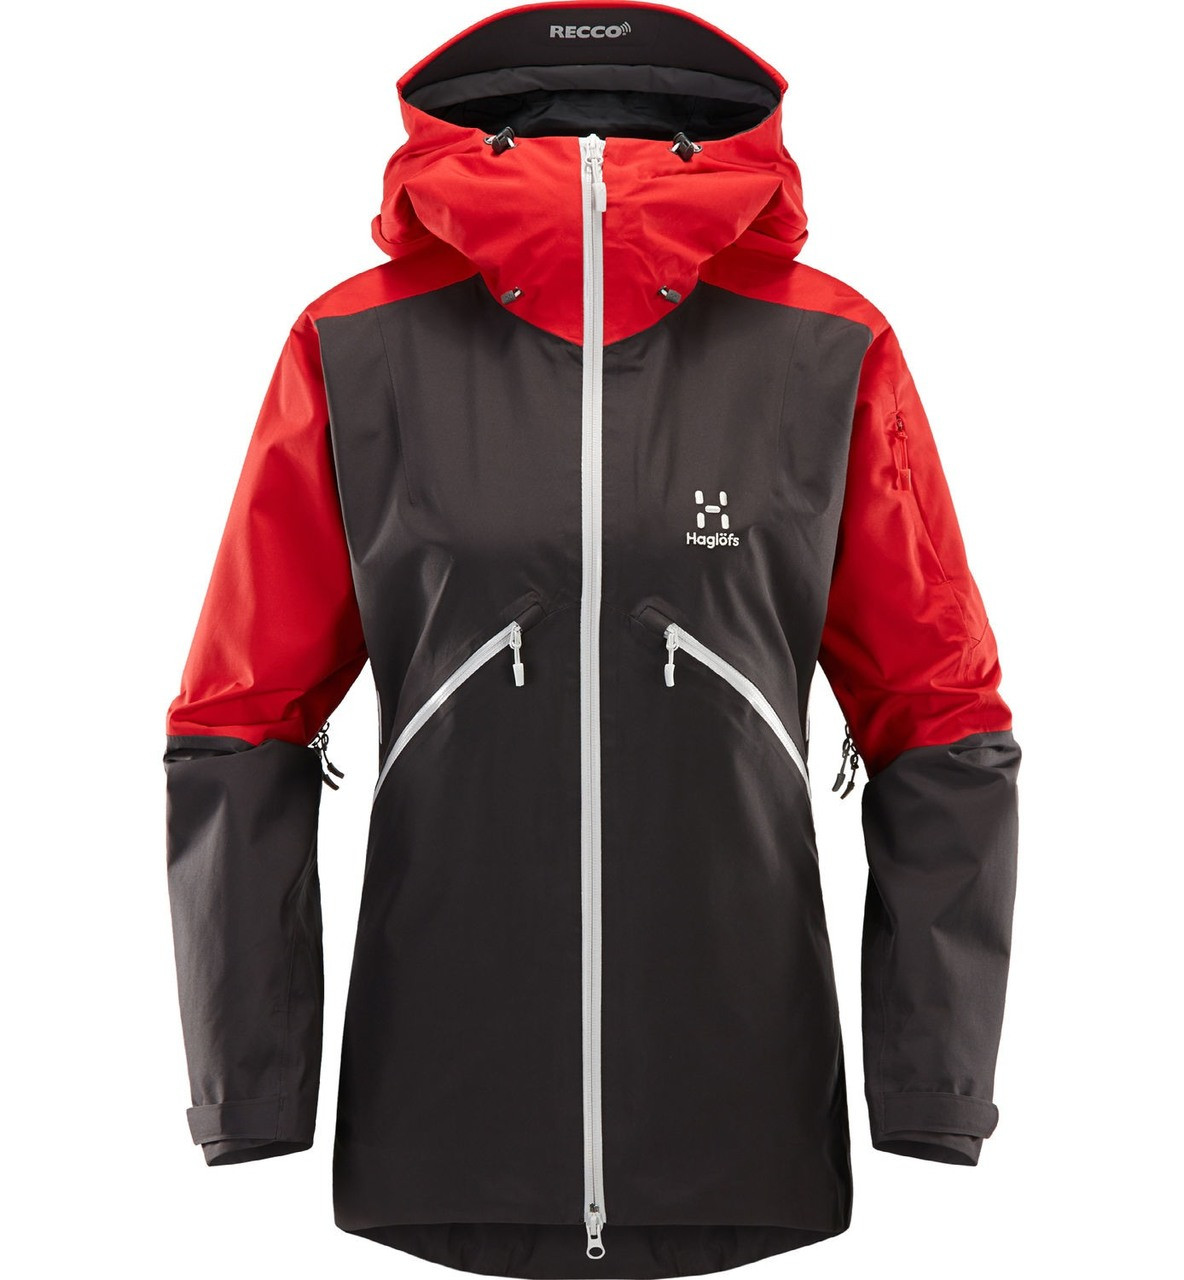 haglofs khione jacket women's ski jacket in slate rich red, front view